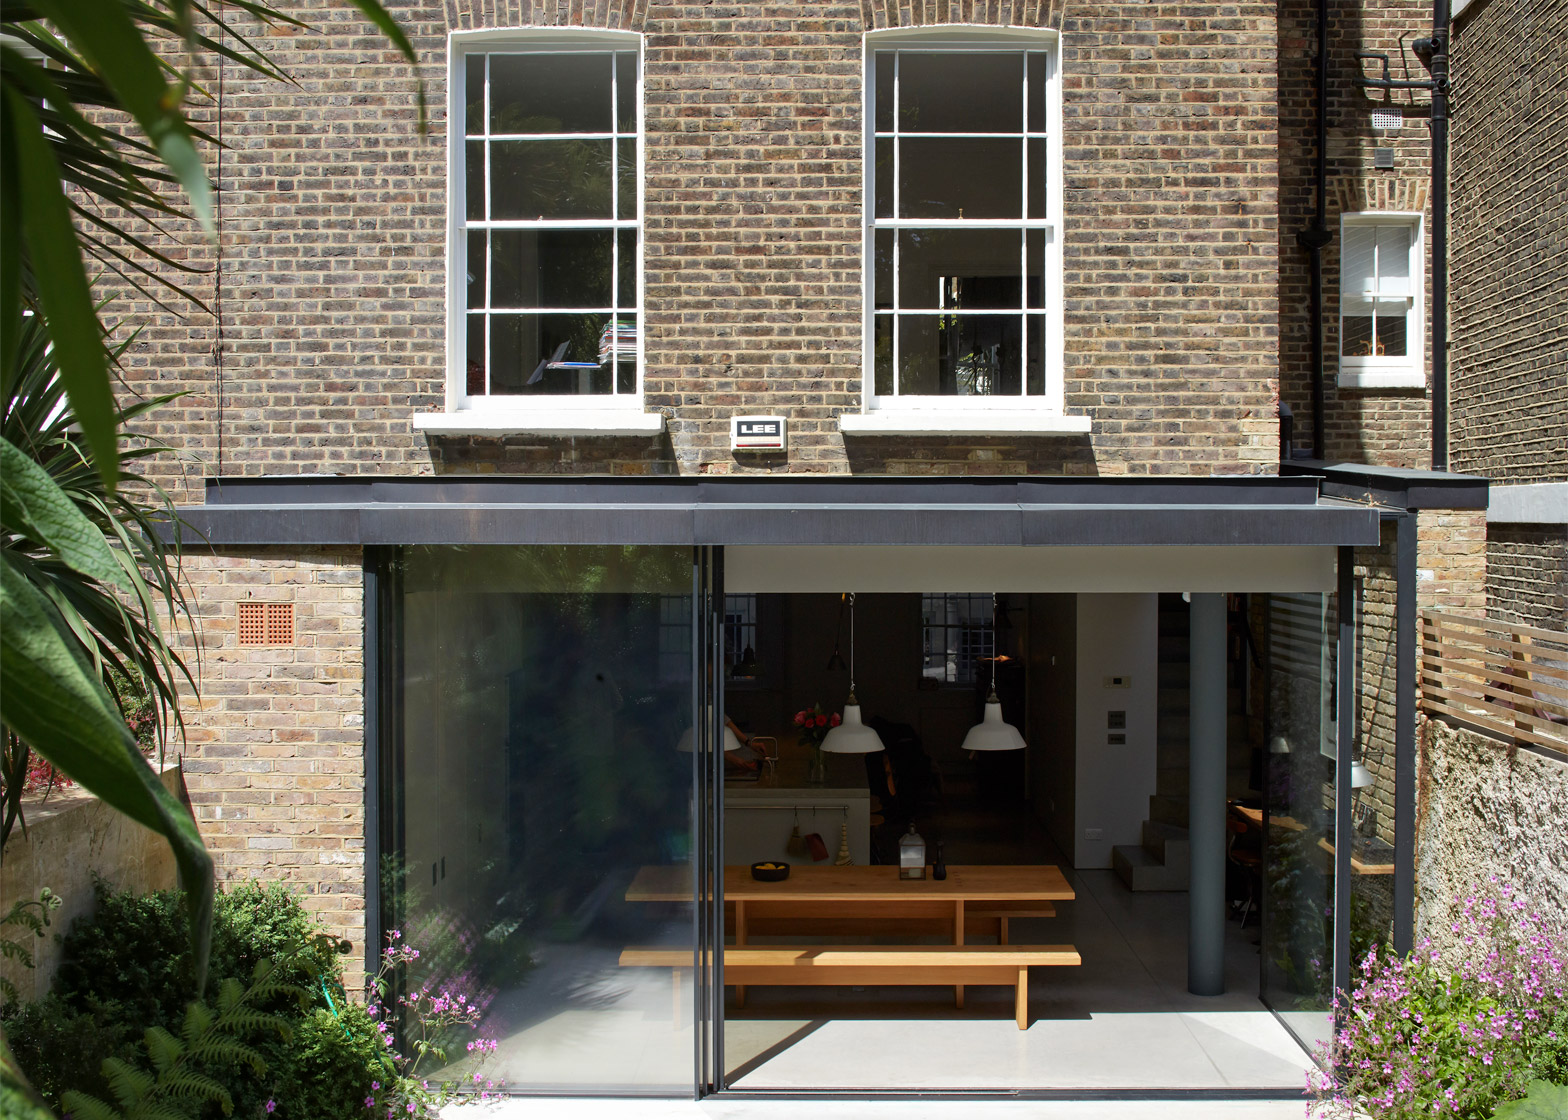 Camden Townhouse by Ben Adams Architects